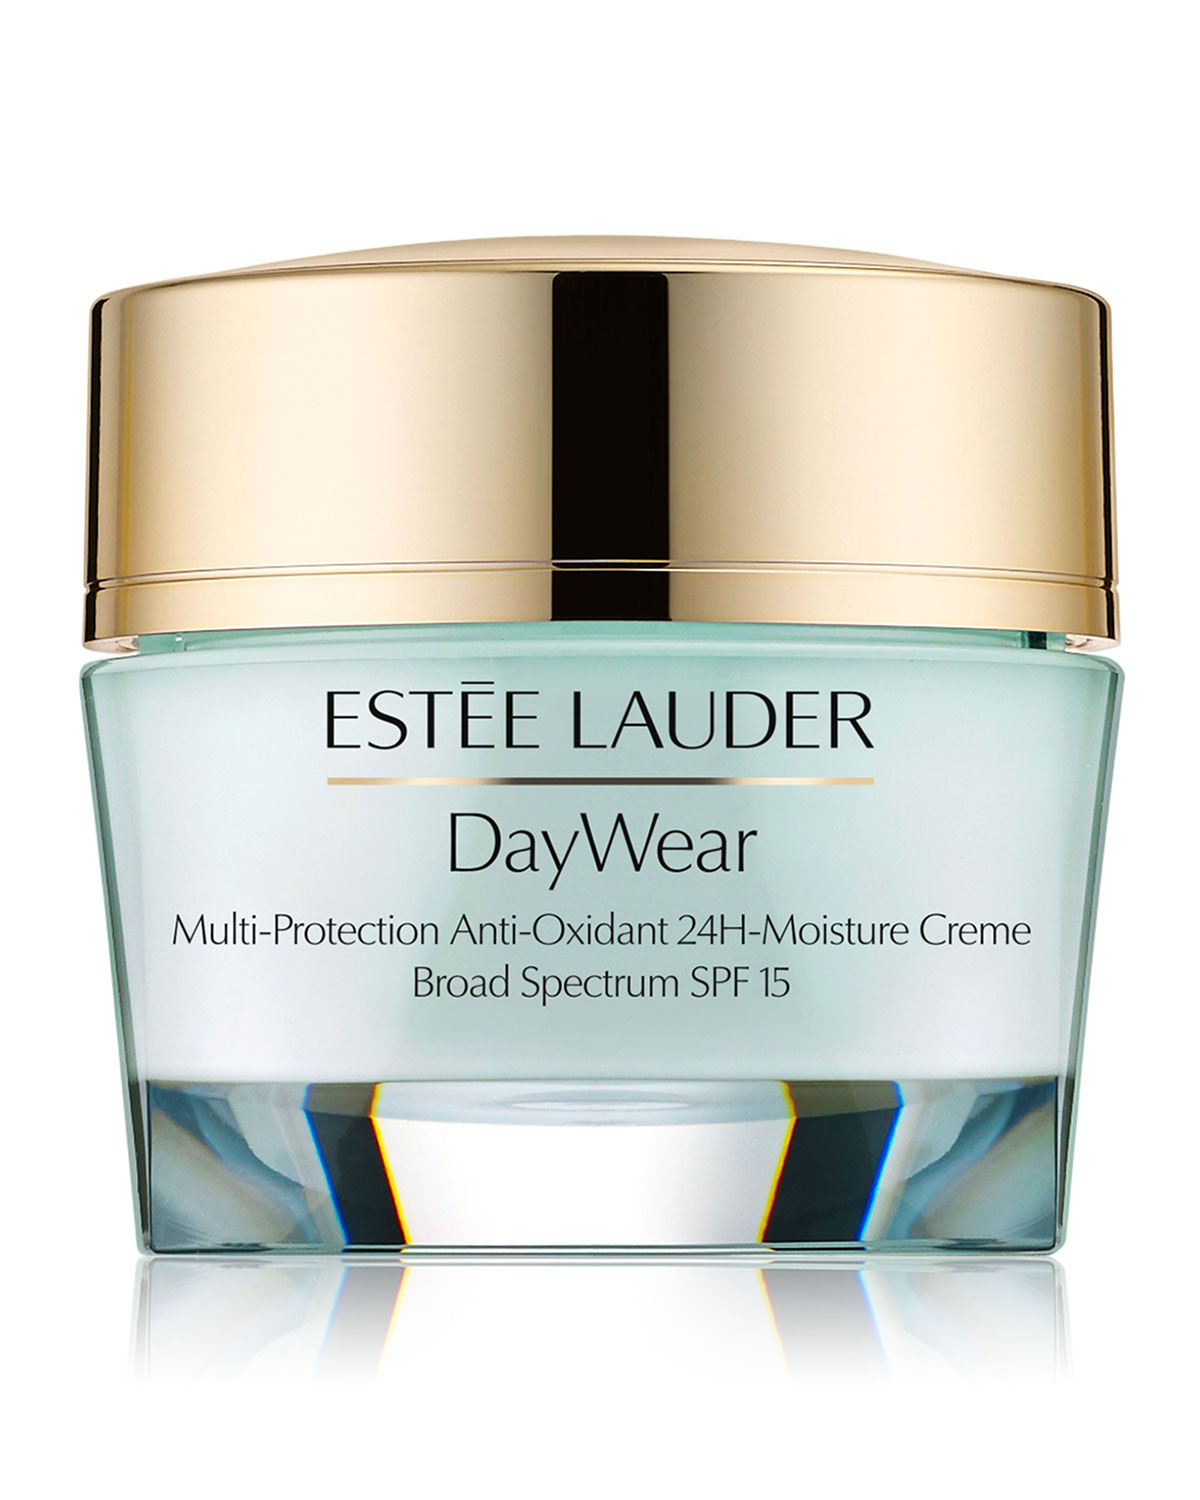 Estee Lauder 1.7 oz. DayWear Advanced Multi-Protection Anti-Oxidant Crème SPF 15